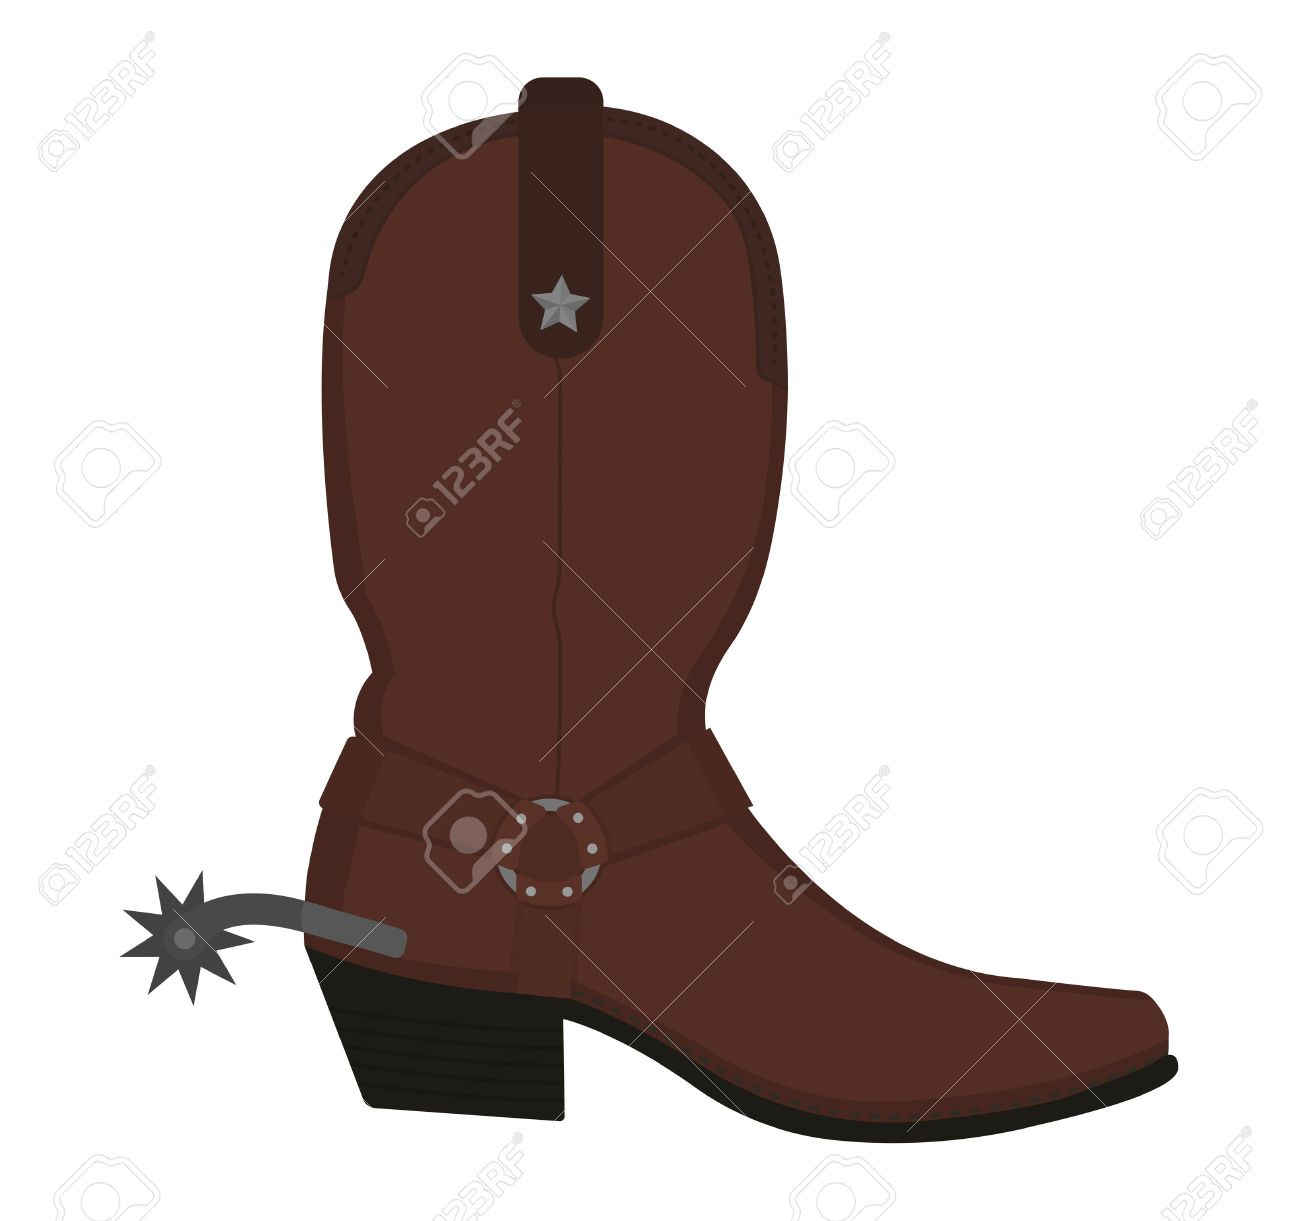 hight resolution of vector wild west leather cowboy boot with spur and star color vector clip art illustration isolated on white